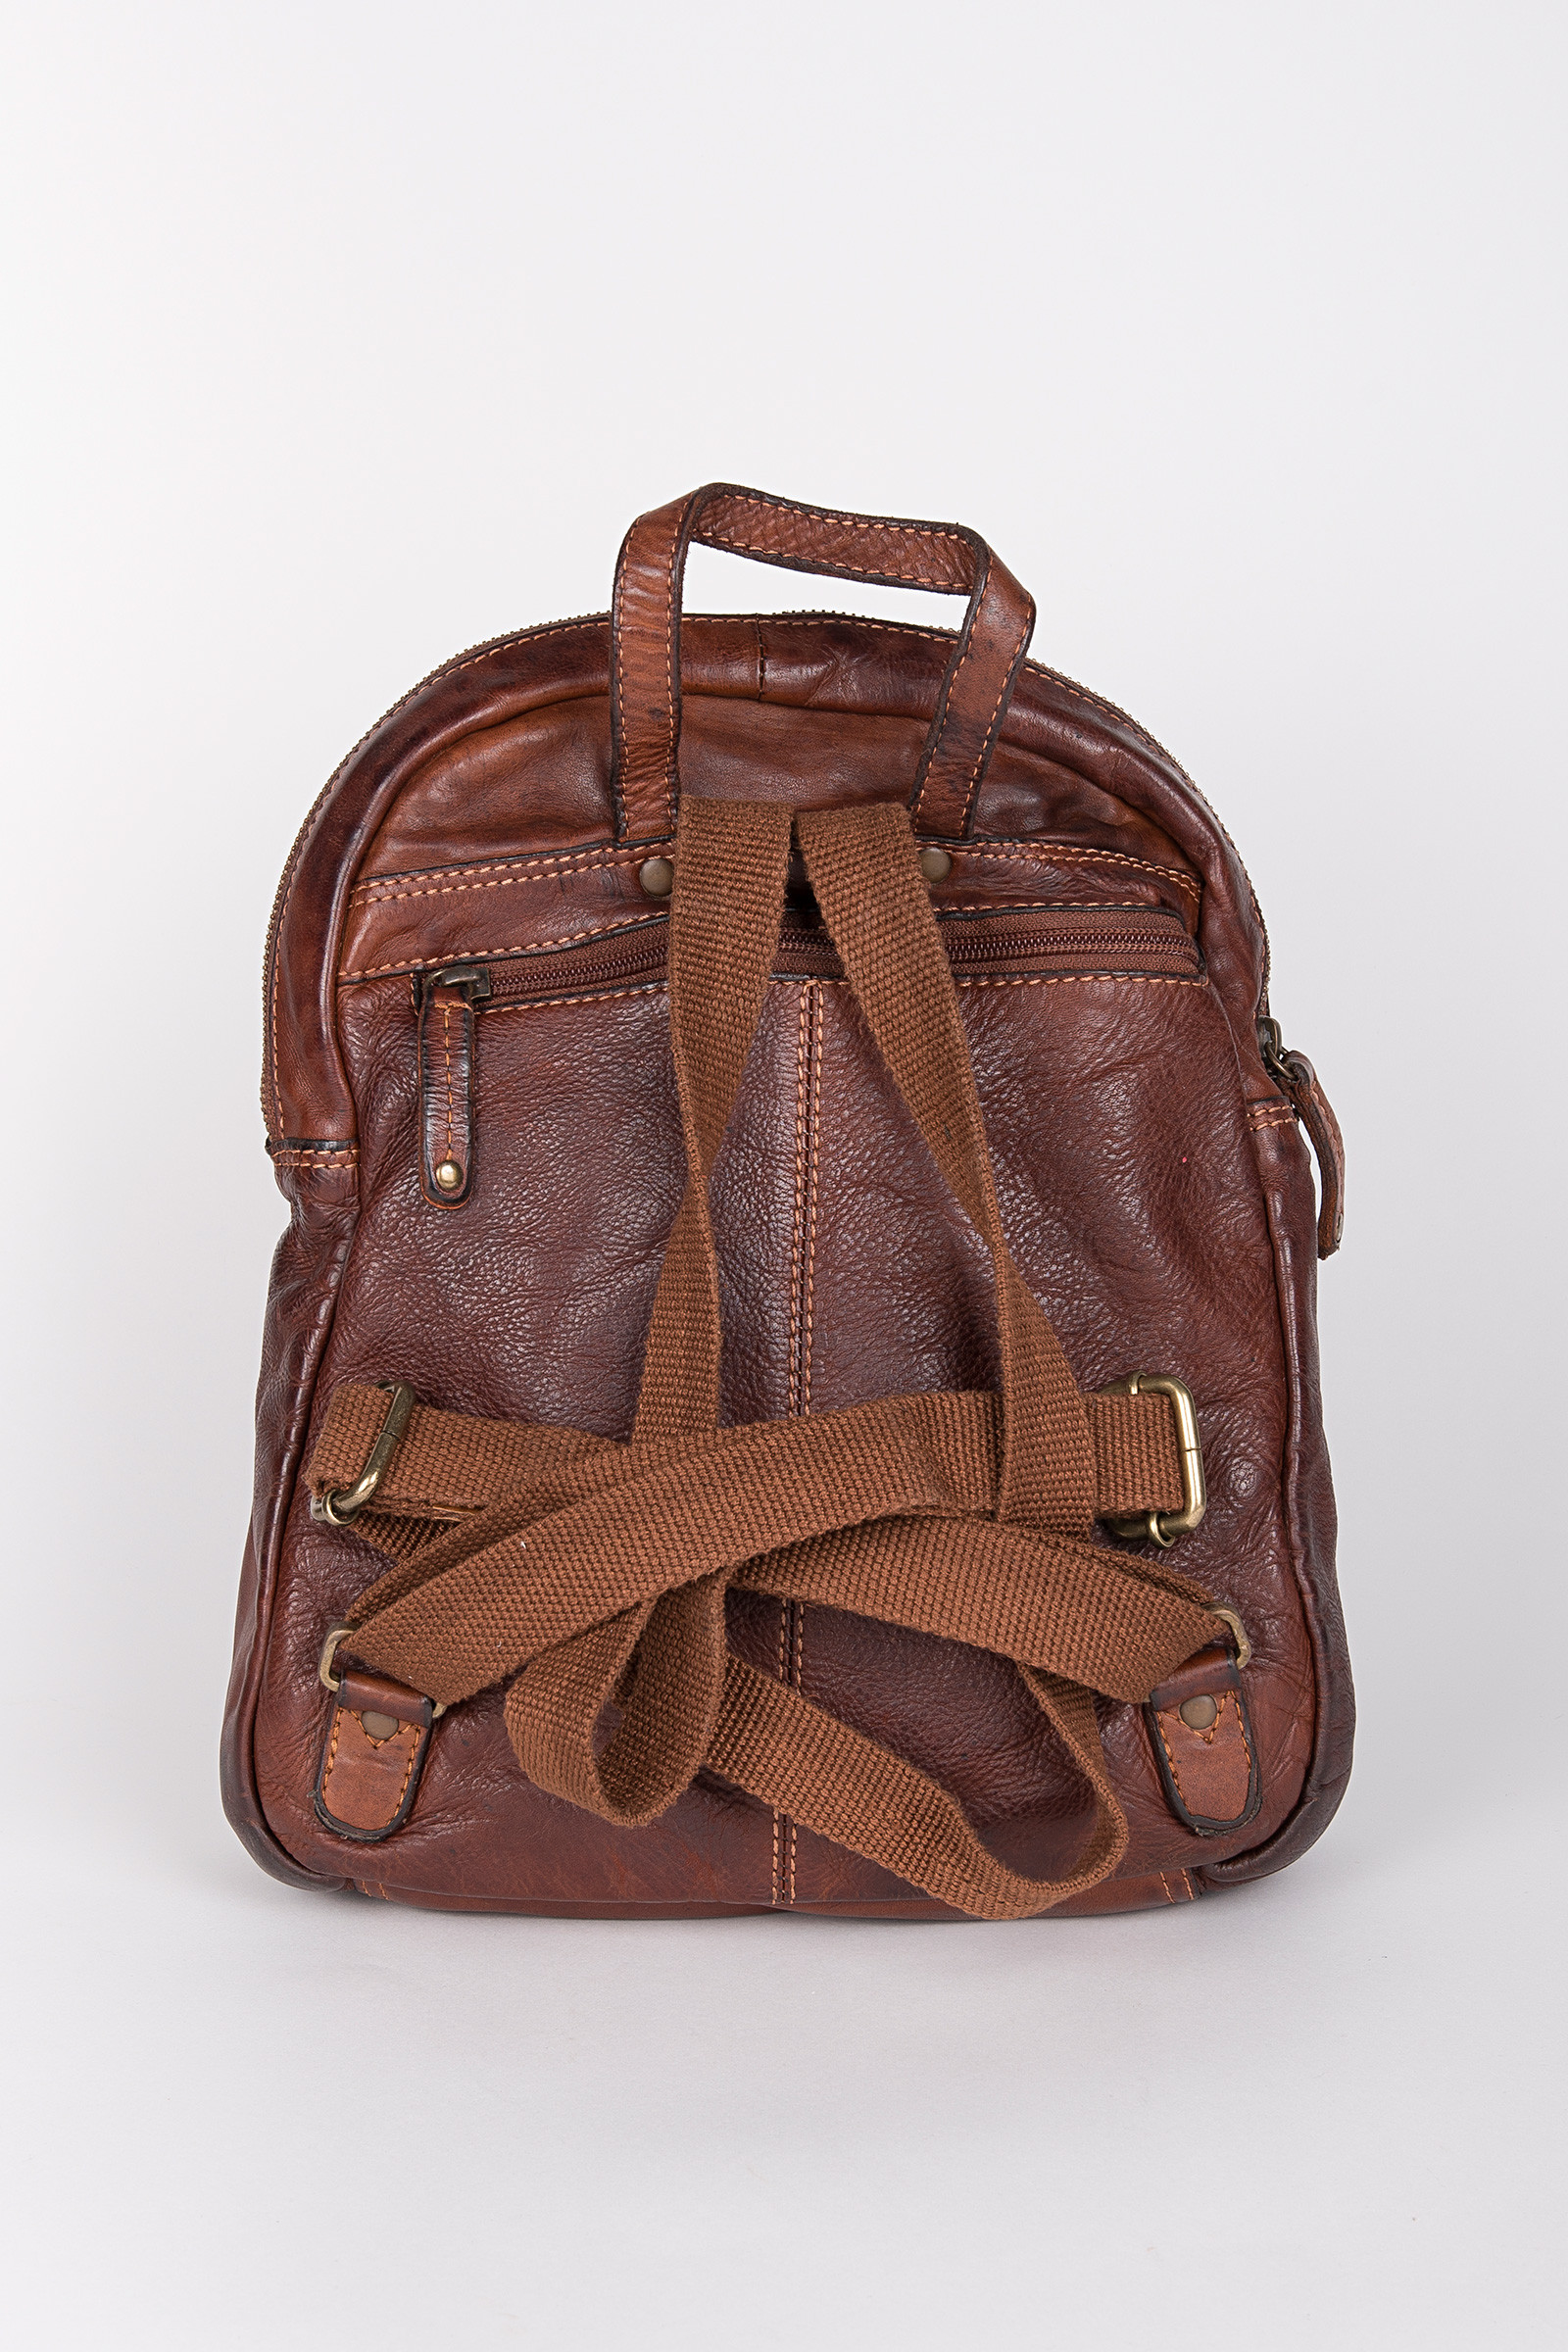 Oslo 006 Cognac Backpack back